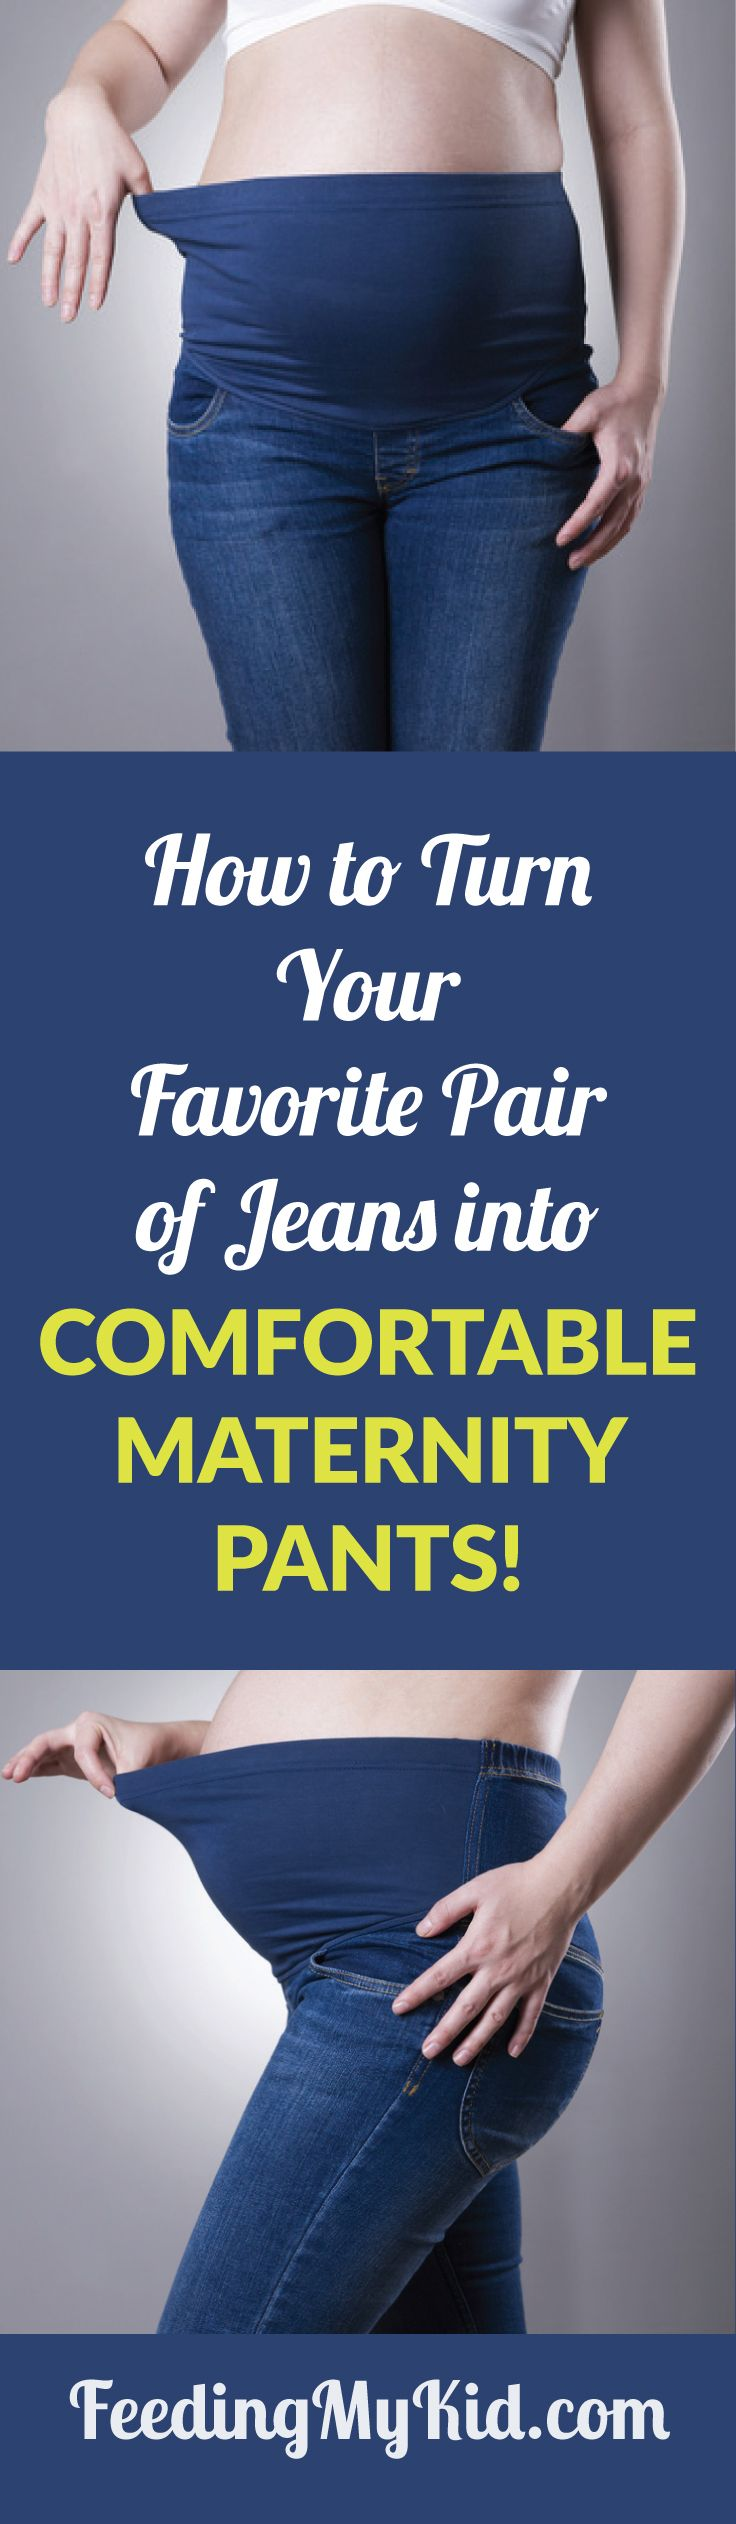 Are you having trouble finding maternity jeans? Check out this video on how to turn your favorite jeans into maternity pants.